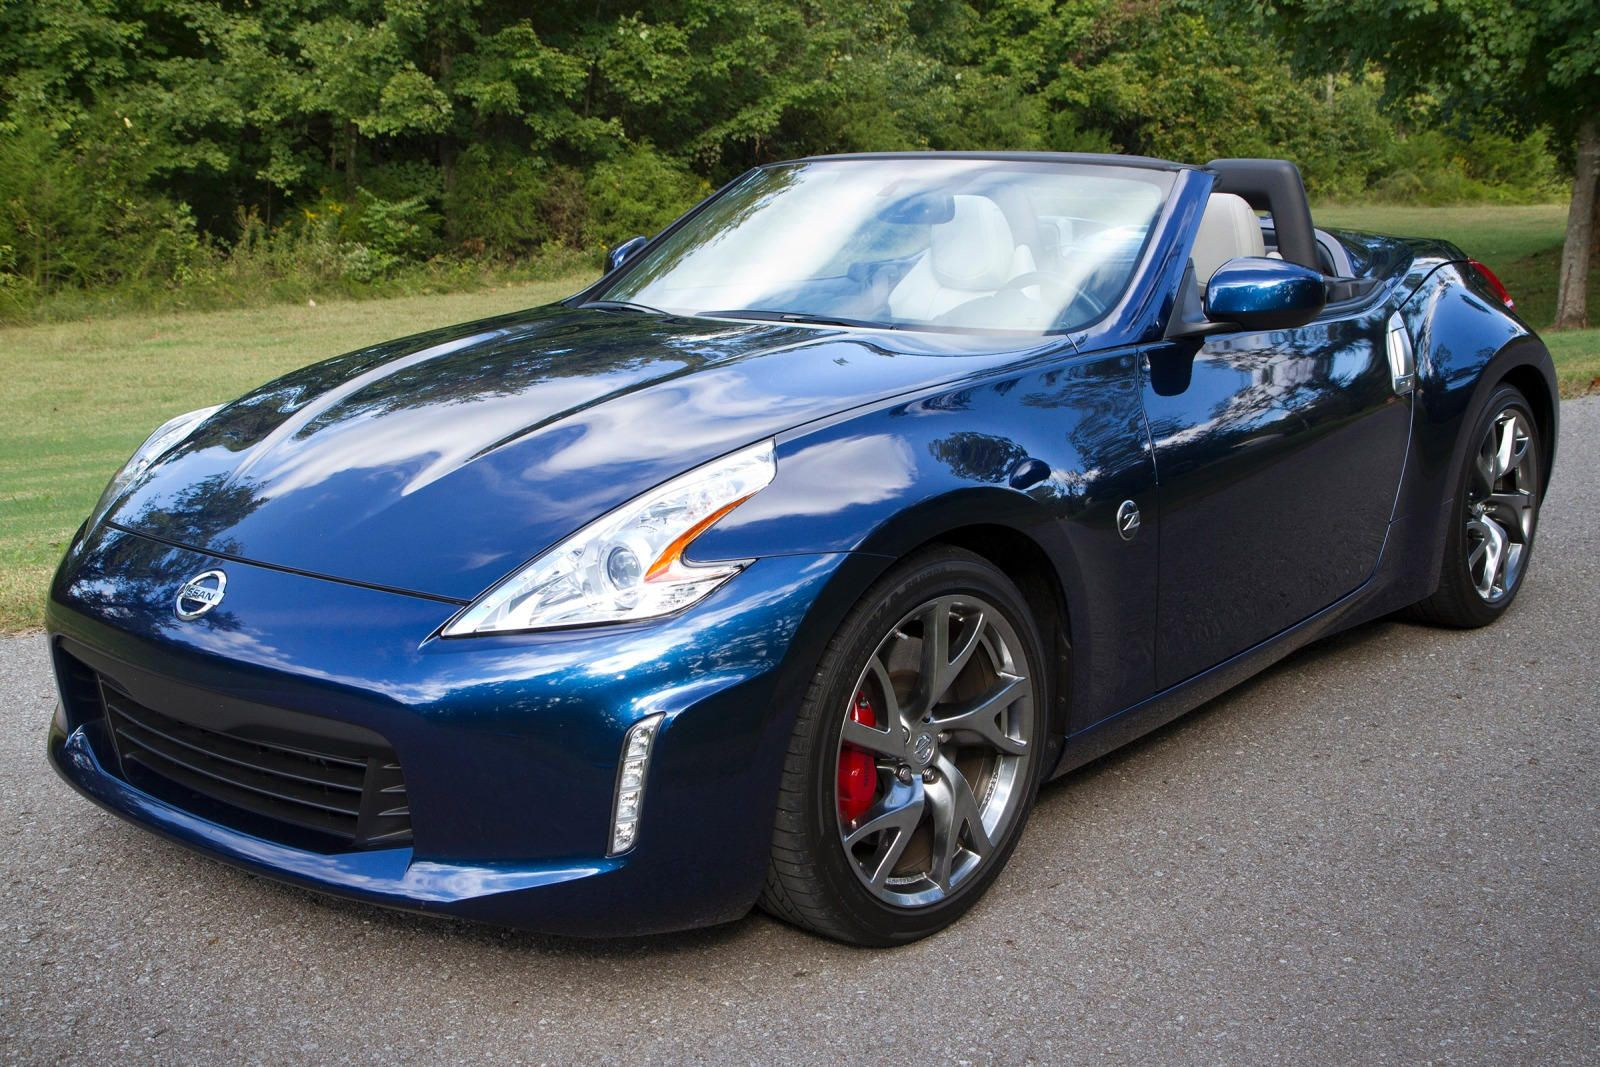 Check out ⭐ the new Nissan 370Z Roadster ⭐ test drive